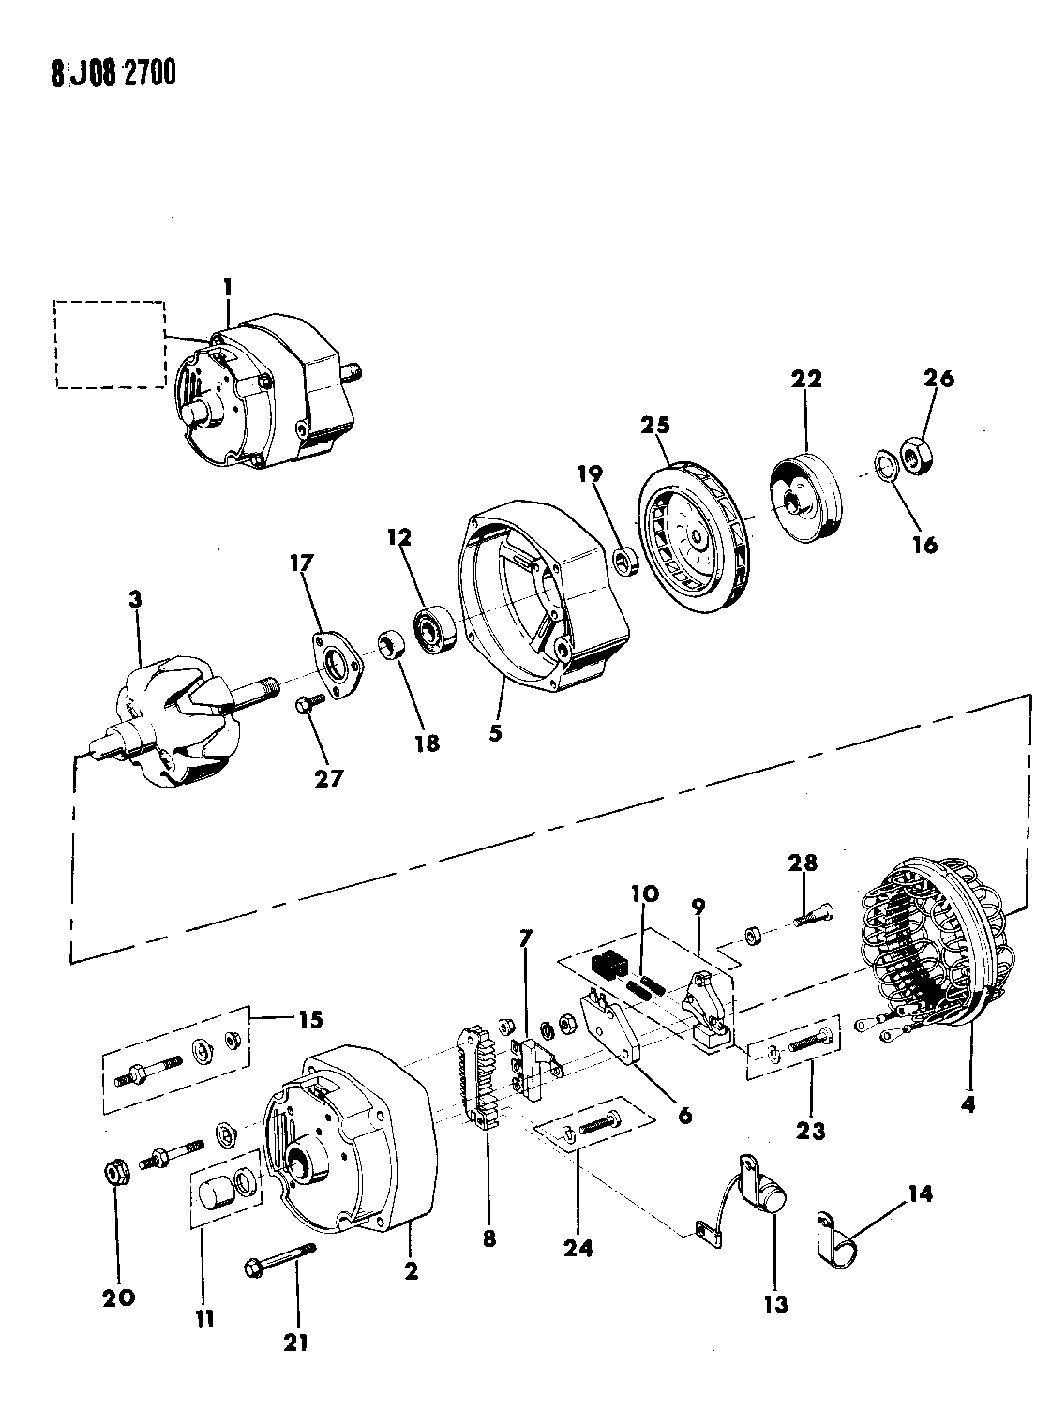 Jeep J10 Alternator Wiring Diagram - Wiring Schematics J Alternator Wiring Diagram on